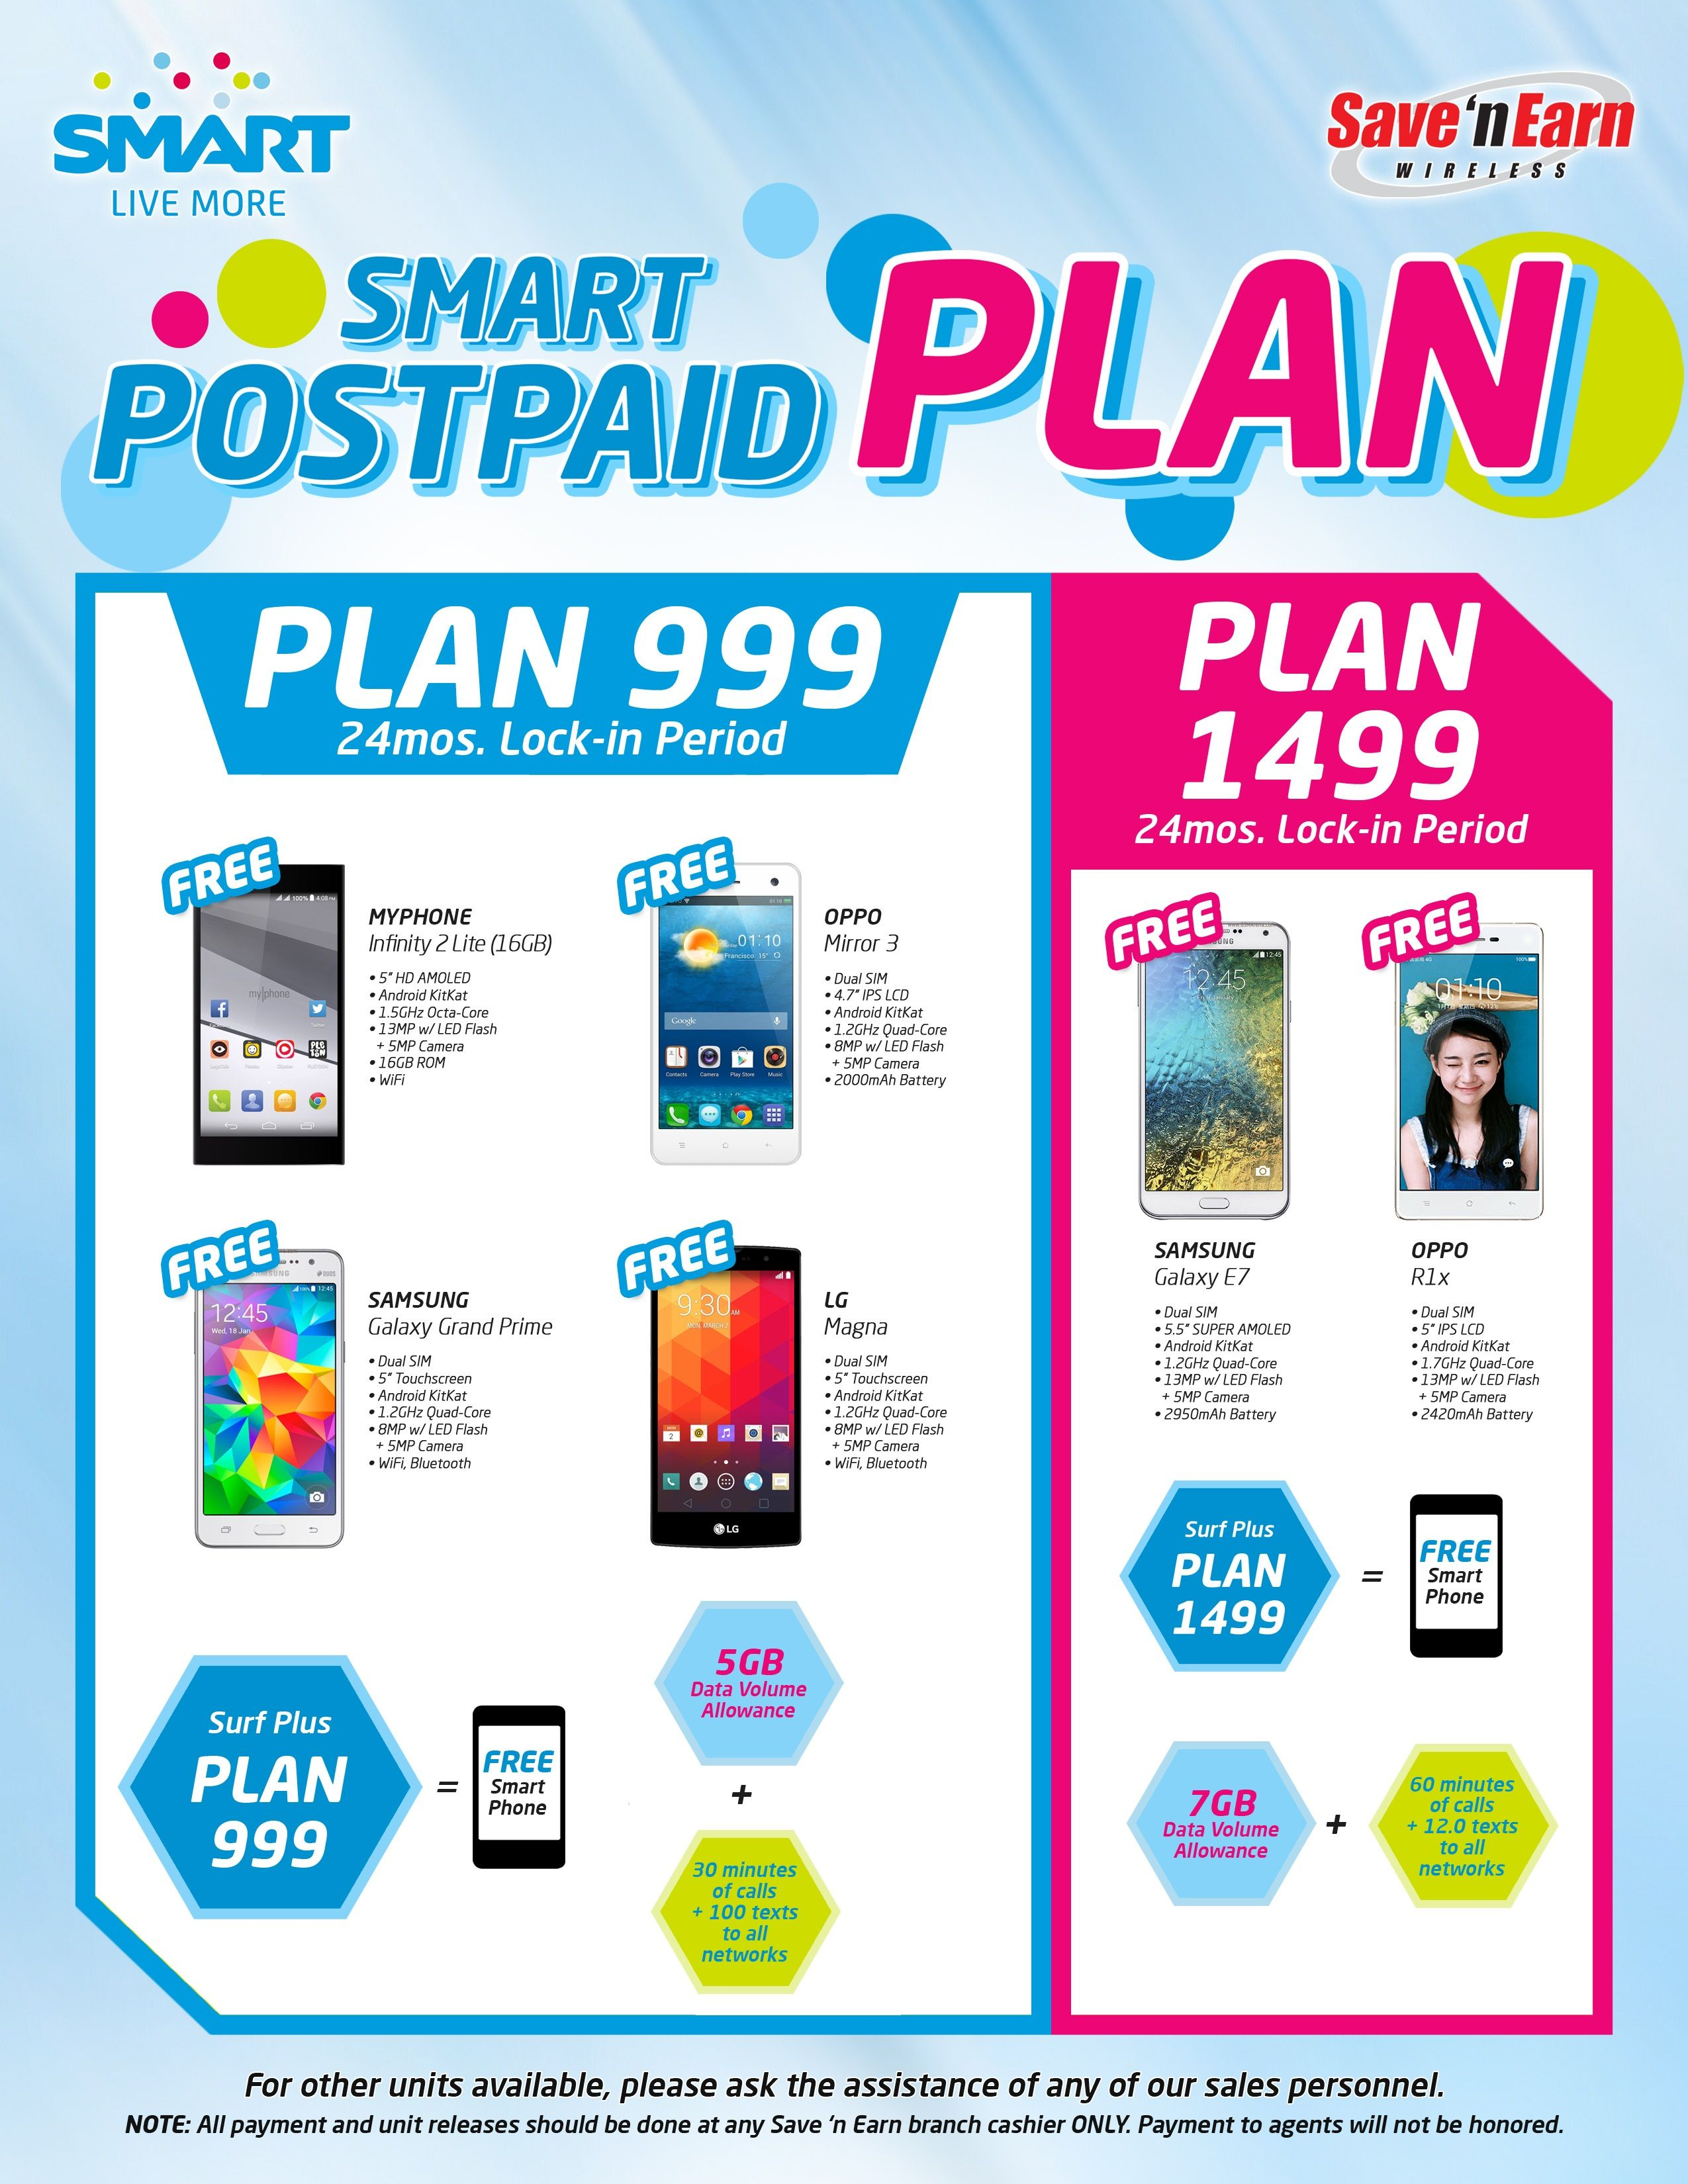 Pin By Save N Earn Wireless On Postpaid Plans Pinterest How To Sim Card Hongkong 10 Days 4g Fup 5gb Get The Latest Smartphones For Free At Your Favorite Branches When You